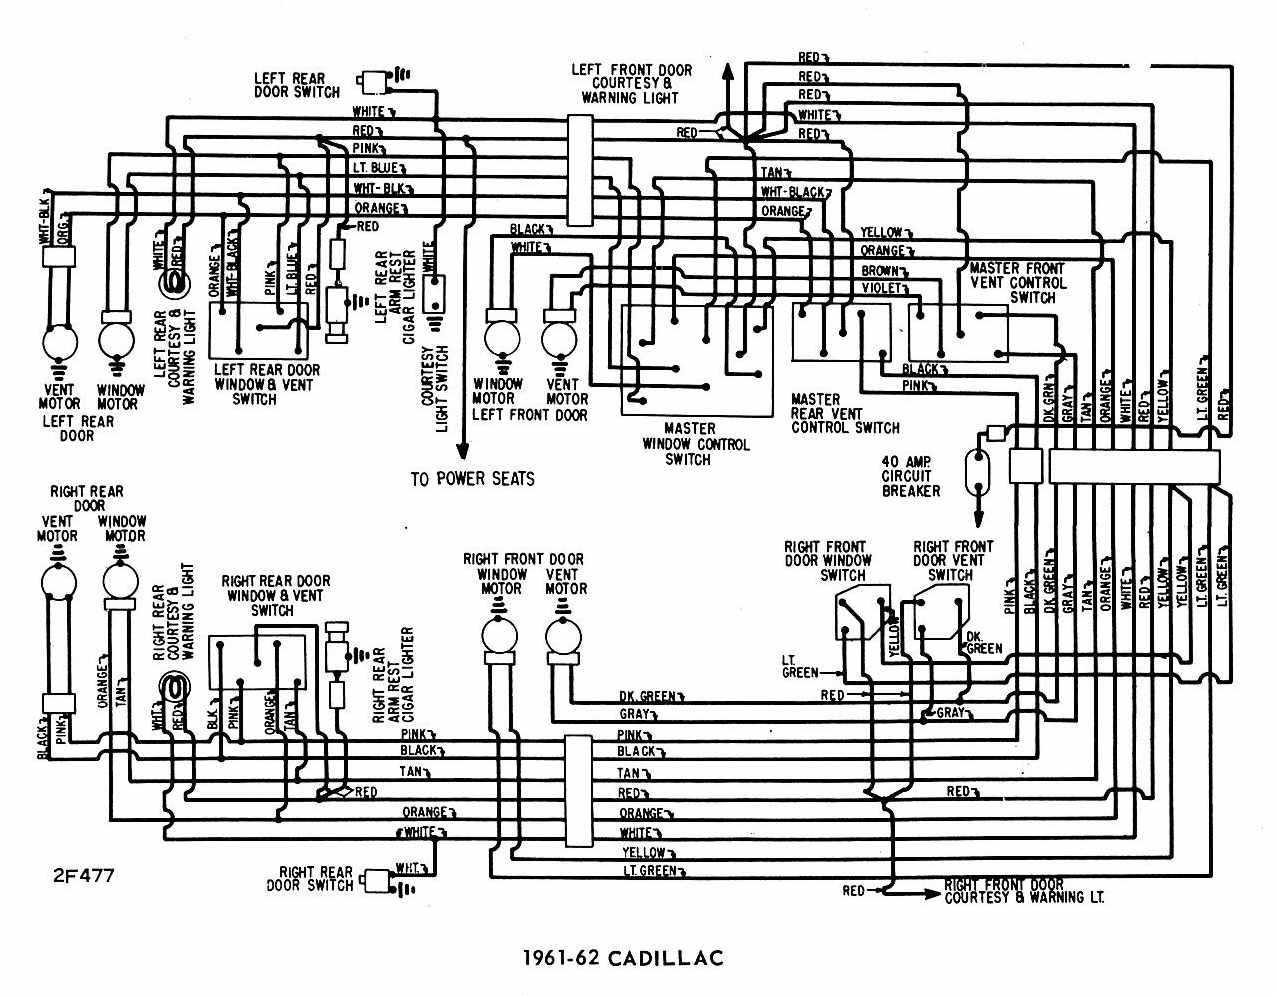 99 Firebird Wiring Diagram Detailed Schematics 1961 Jeep Cj5 Diagrams 1962 Cadillac Vacuum 1963 Ignition Diy